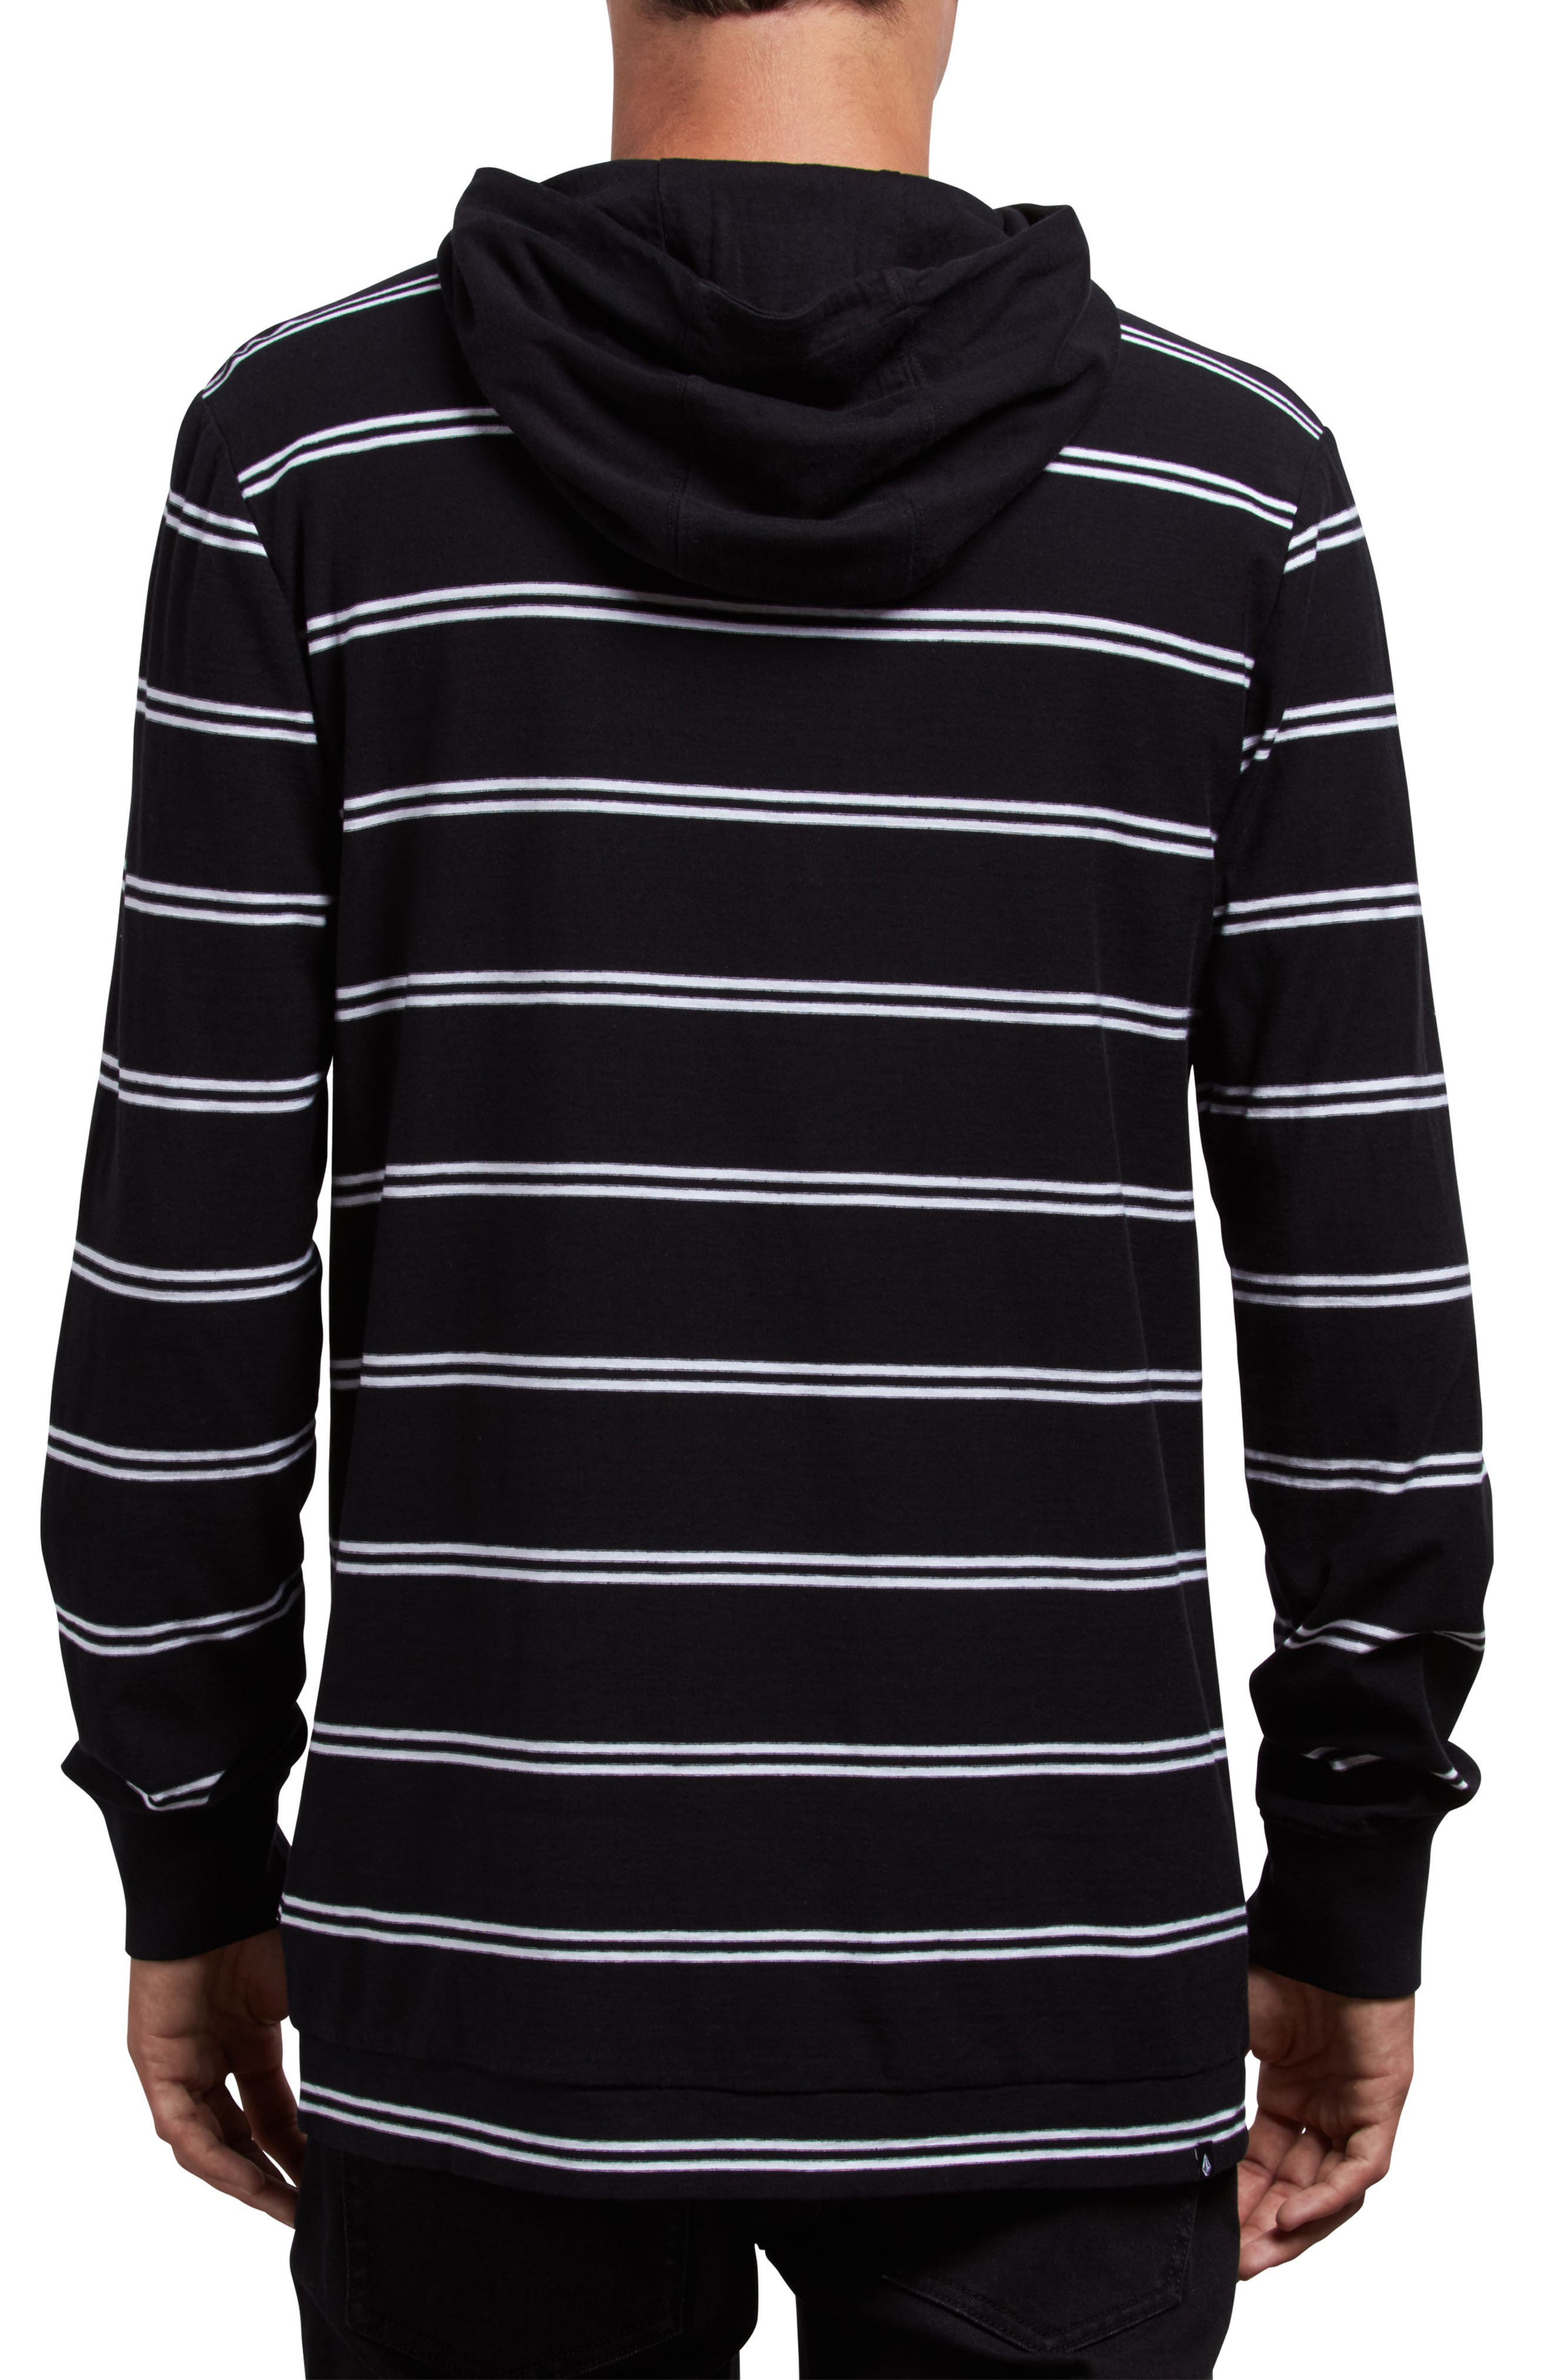 Randall Striped Pullover Hoodie,                             Alternate thumbnail 2, color,                             BLACK